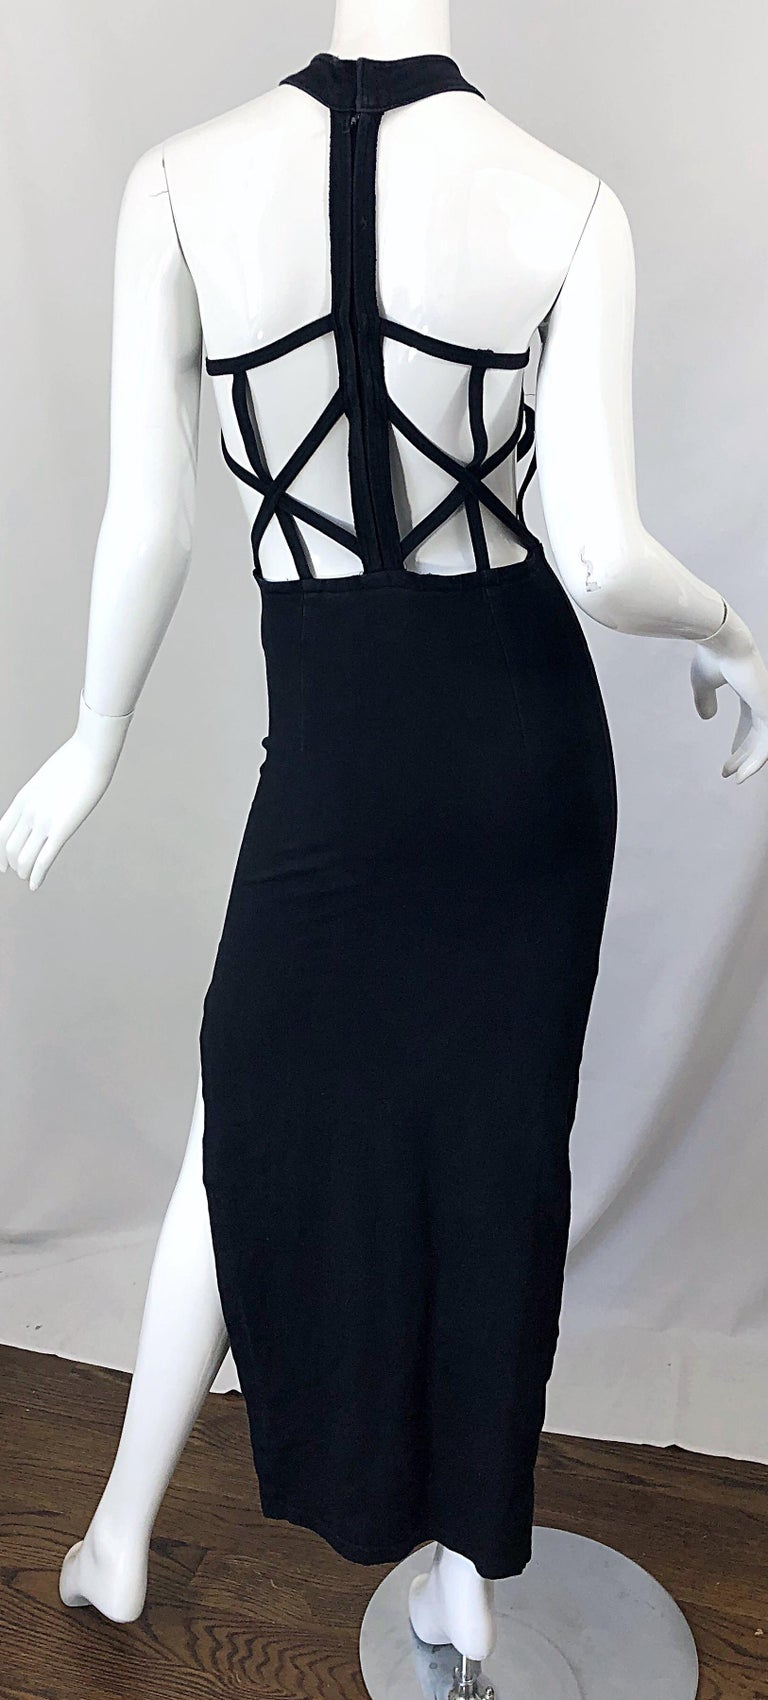 1990s Black Caged Bodycon Sexy Cotton Vintage Early 90s Cut - Out Gown Dress For Sale 7